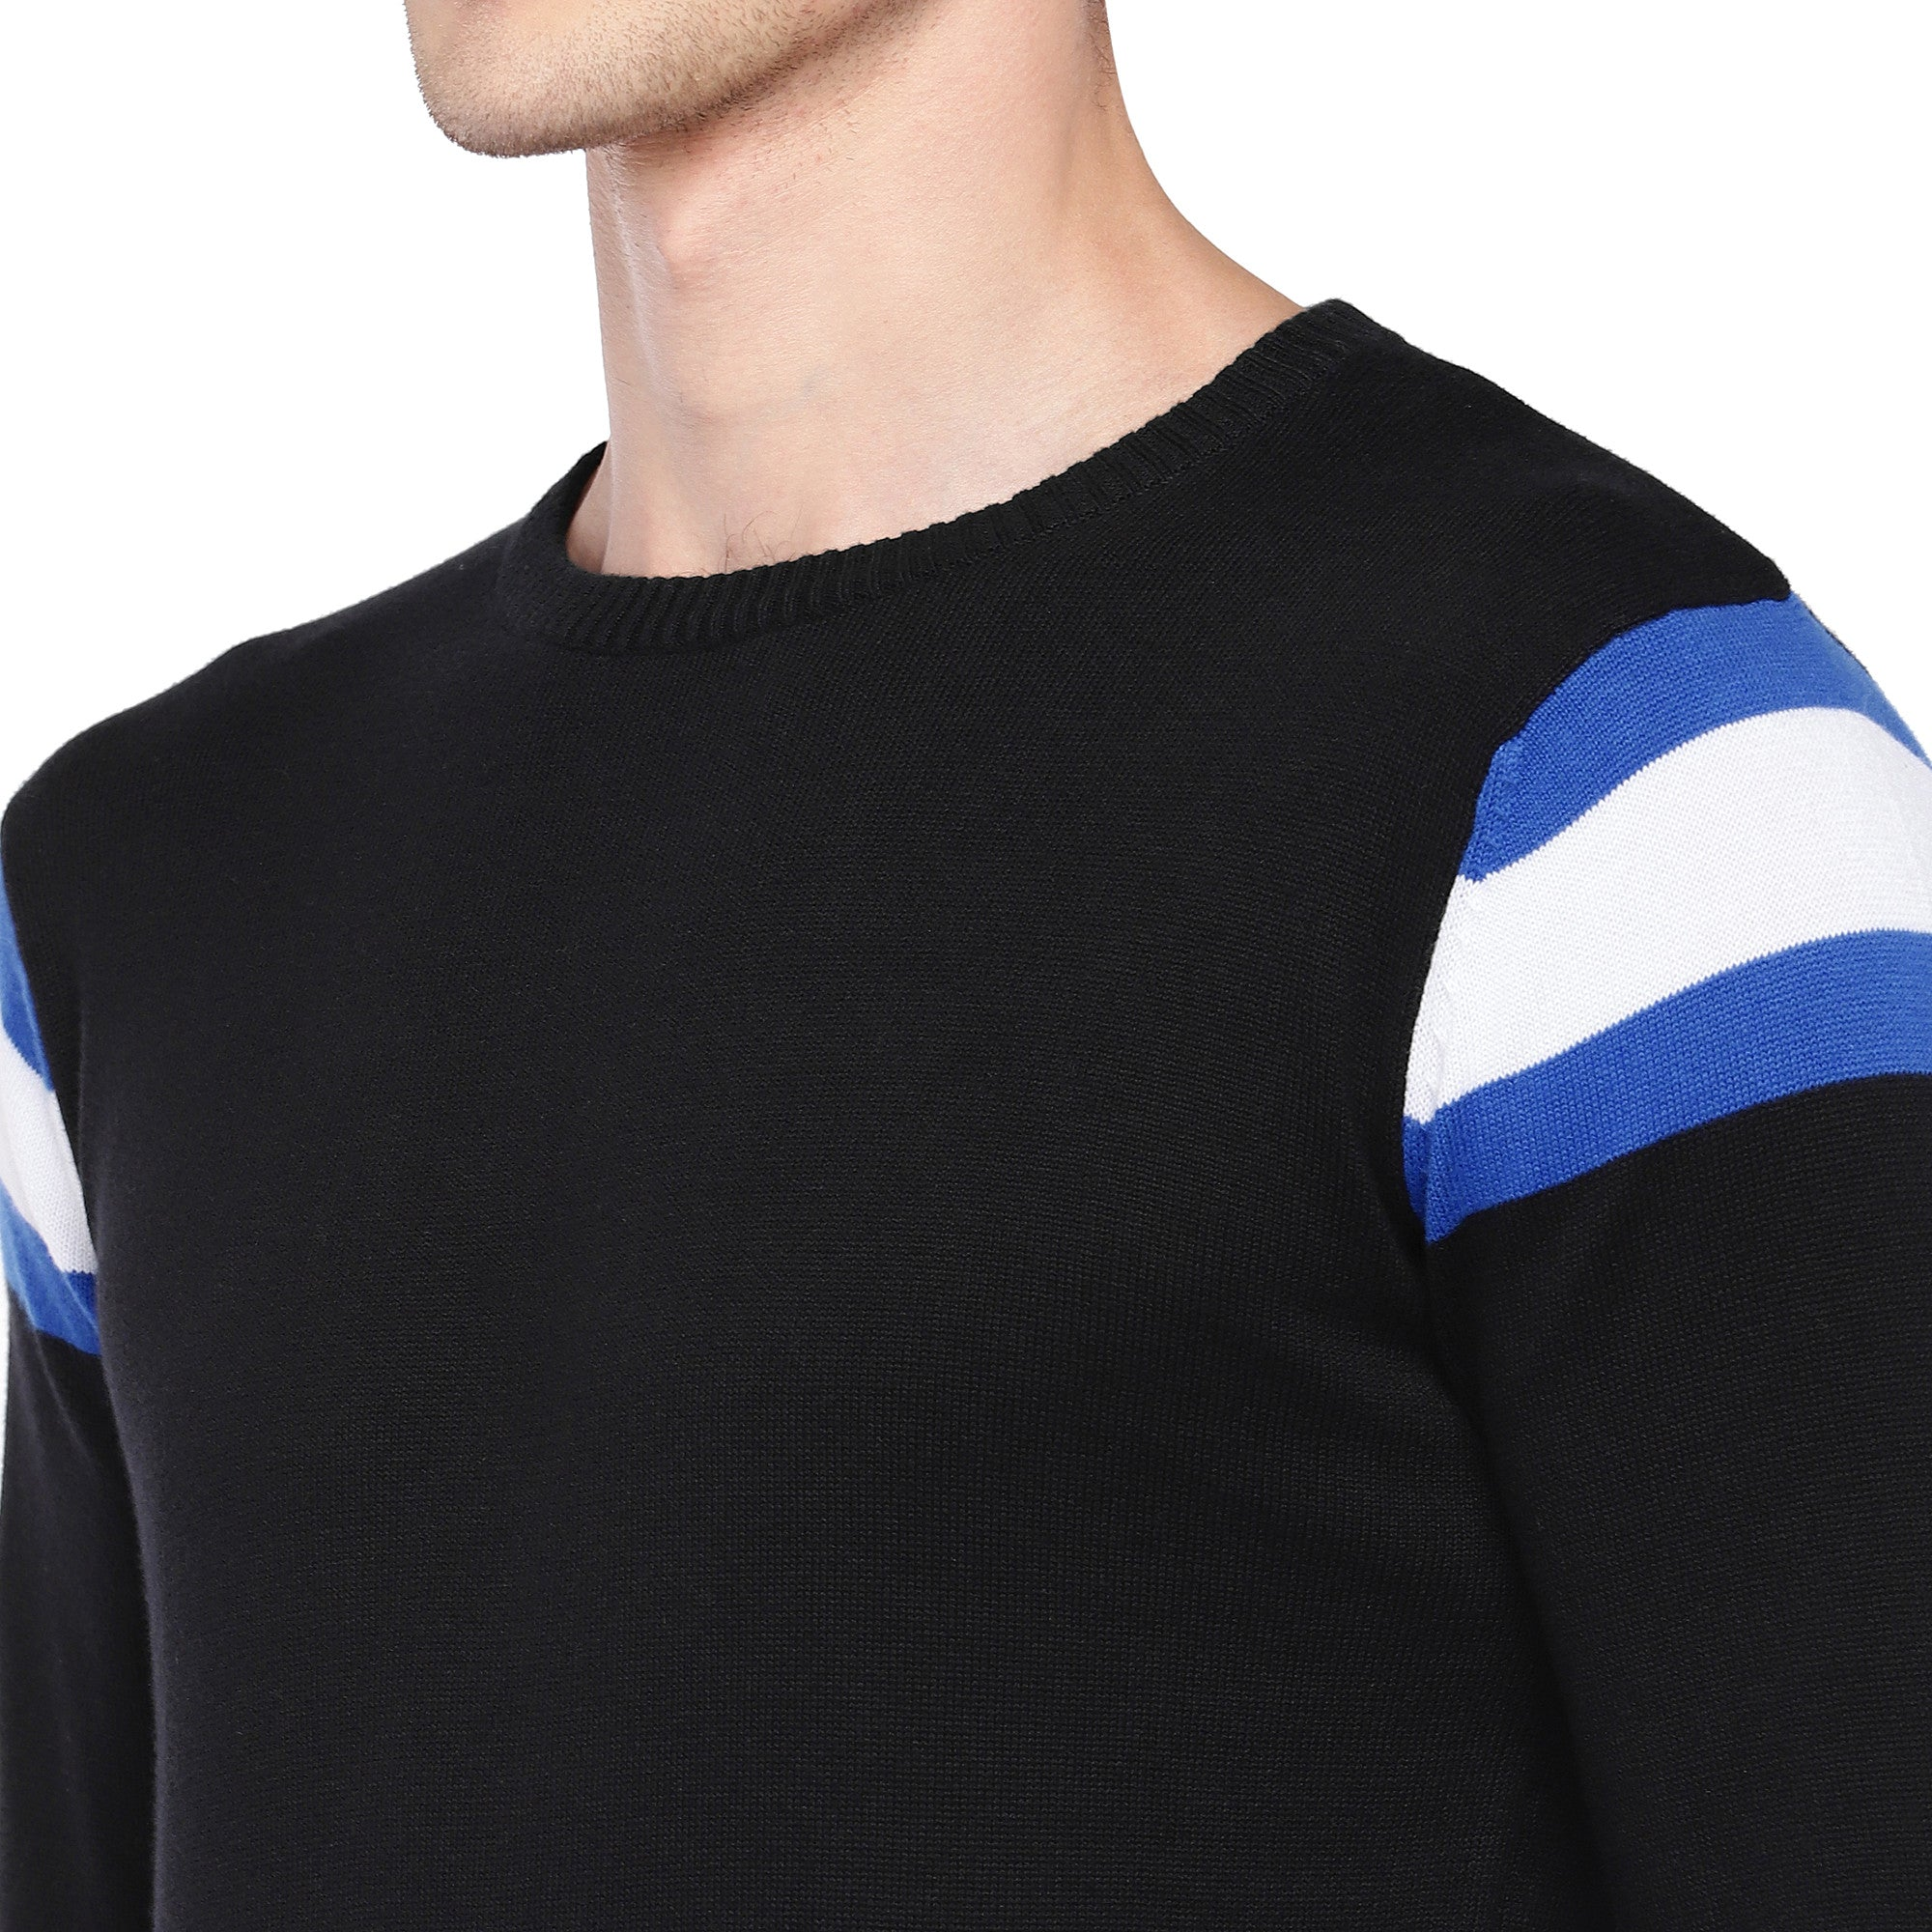 Black Solid Round Neck T-shirt-5